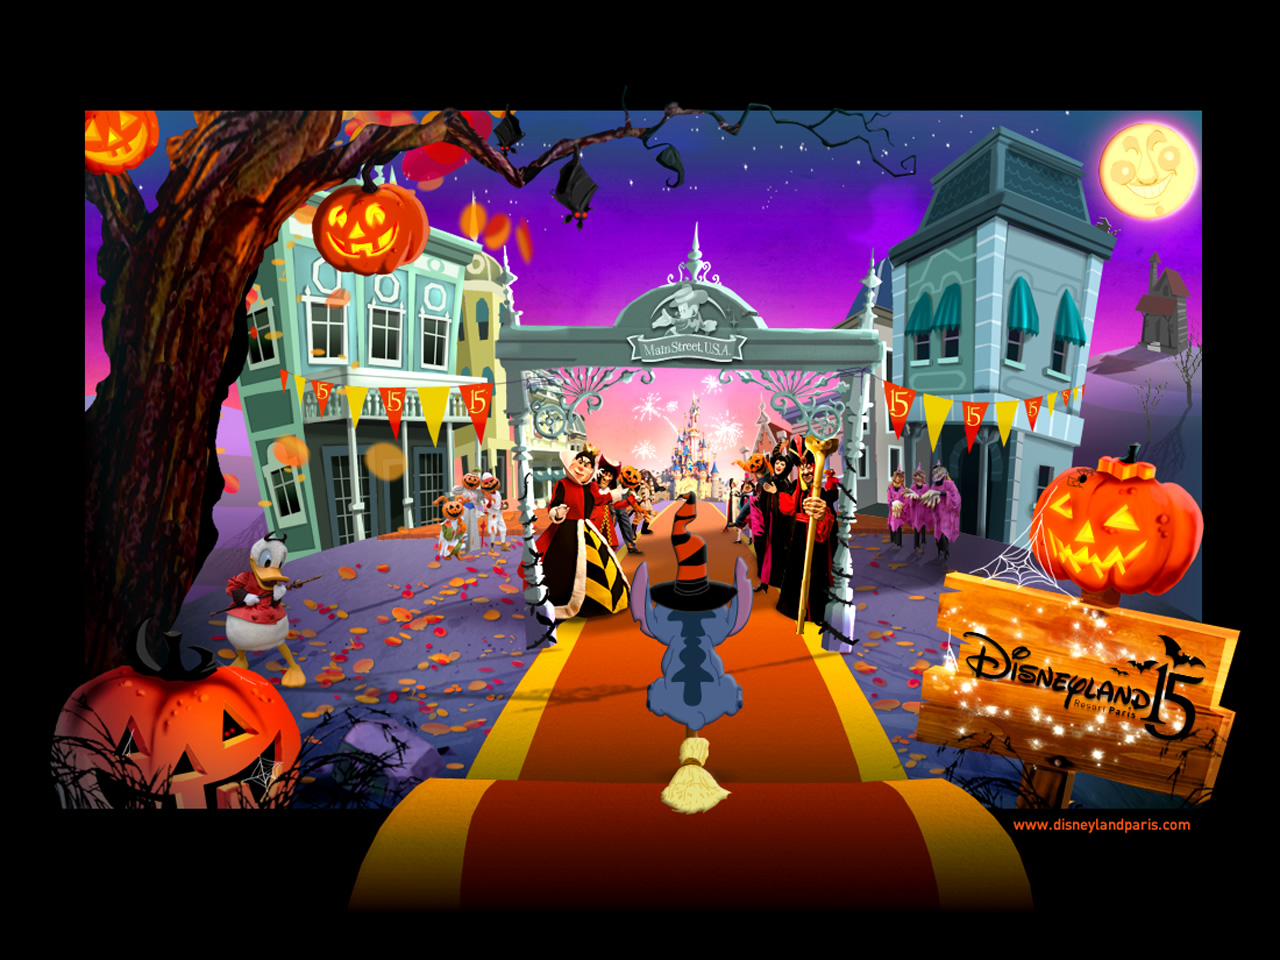 Most Inspiring Wallpaper Halloween Screensaver - disney-halloween_wallpapers_7107_1280x960-730294  Collection_501382.jpg